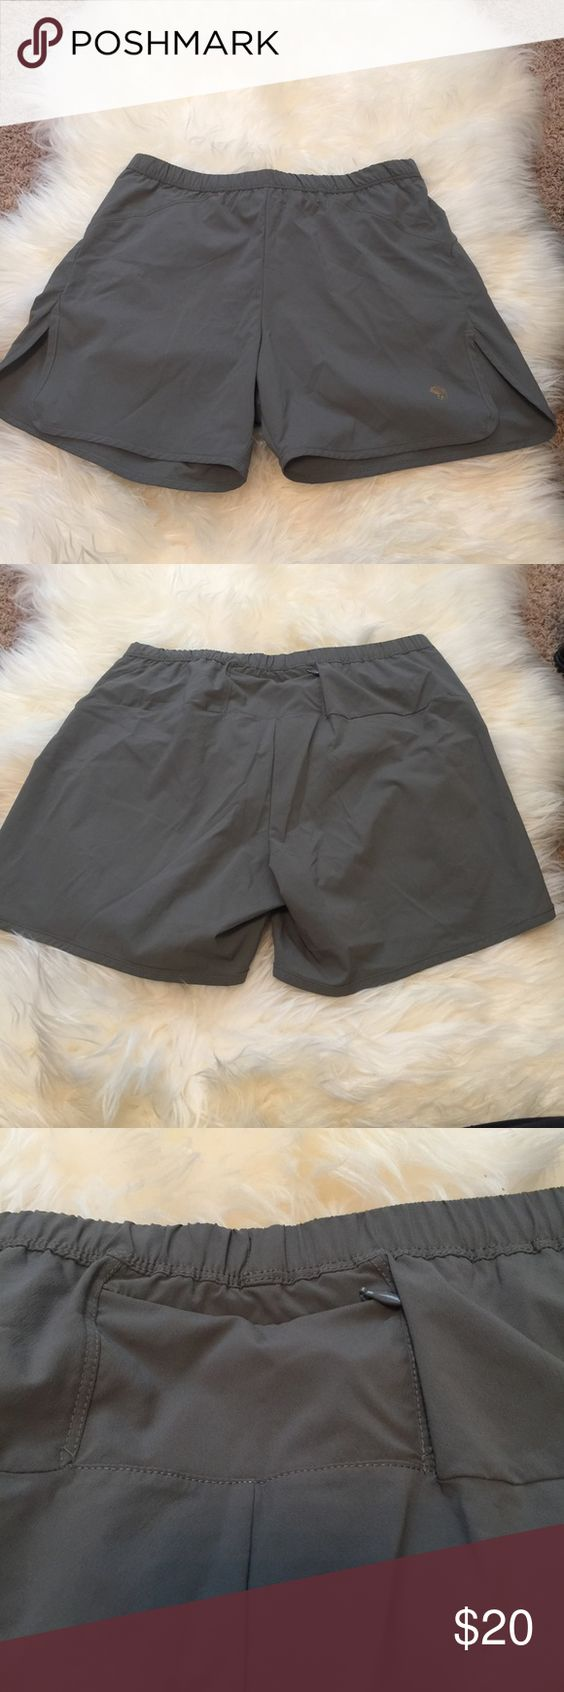 Mountain hard wear Hiking shorts Brand new/ never worn hiking shorts with breathable zipper vent in back. Mountain Hard Wear Shorts